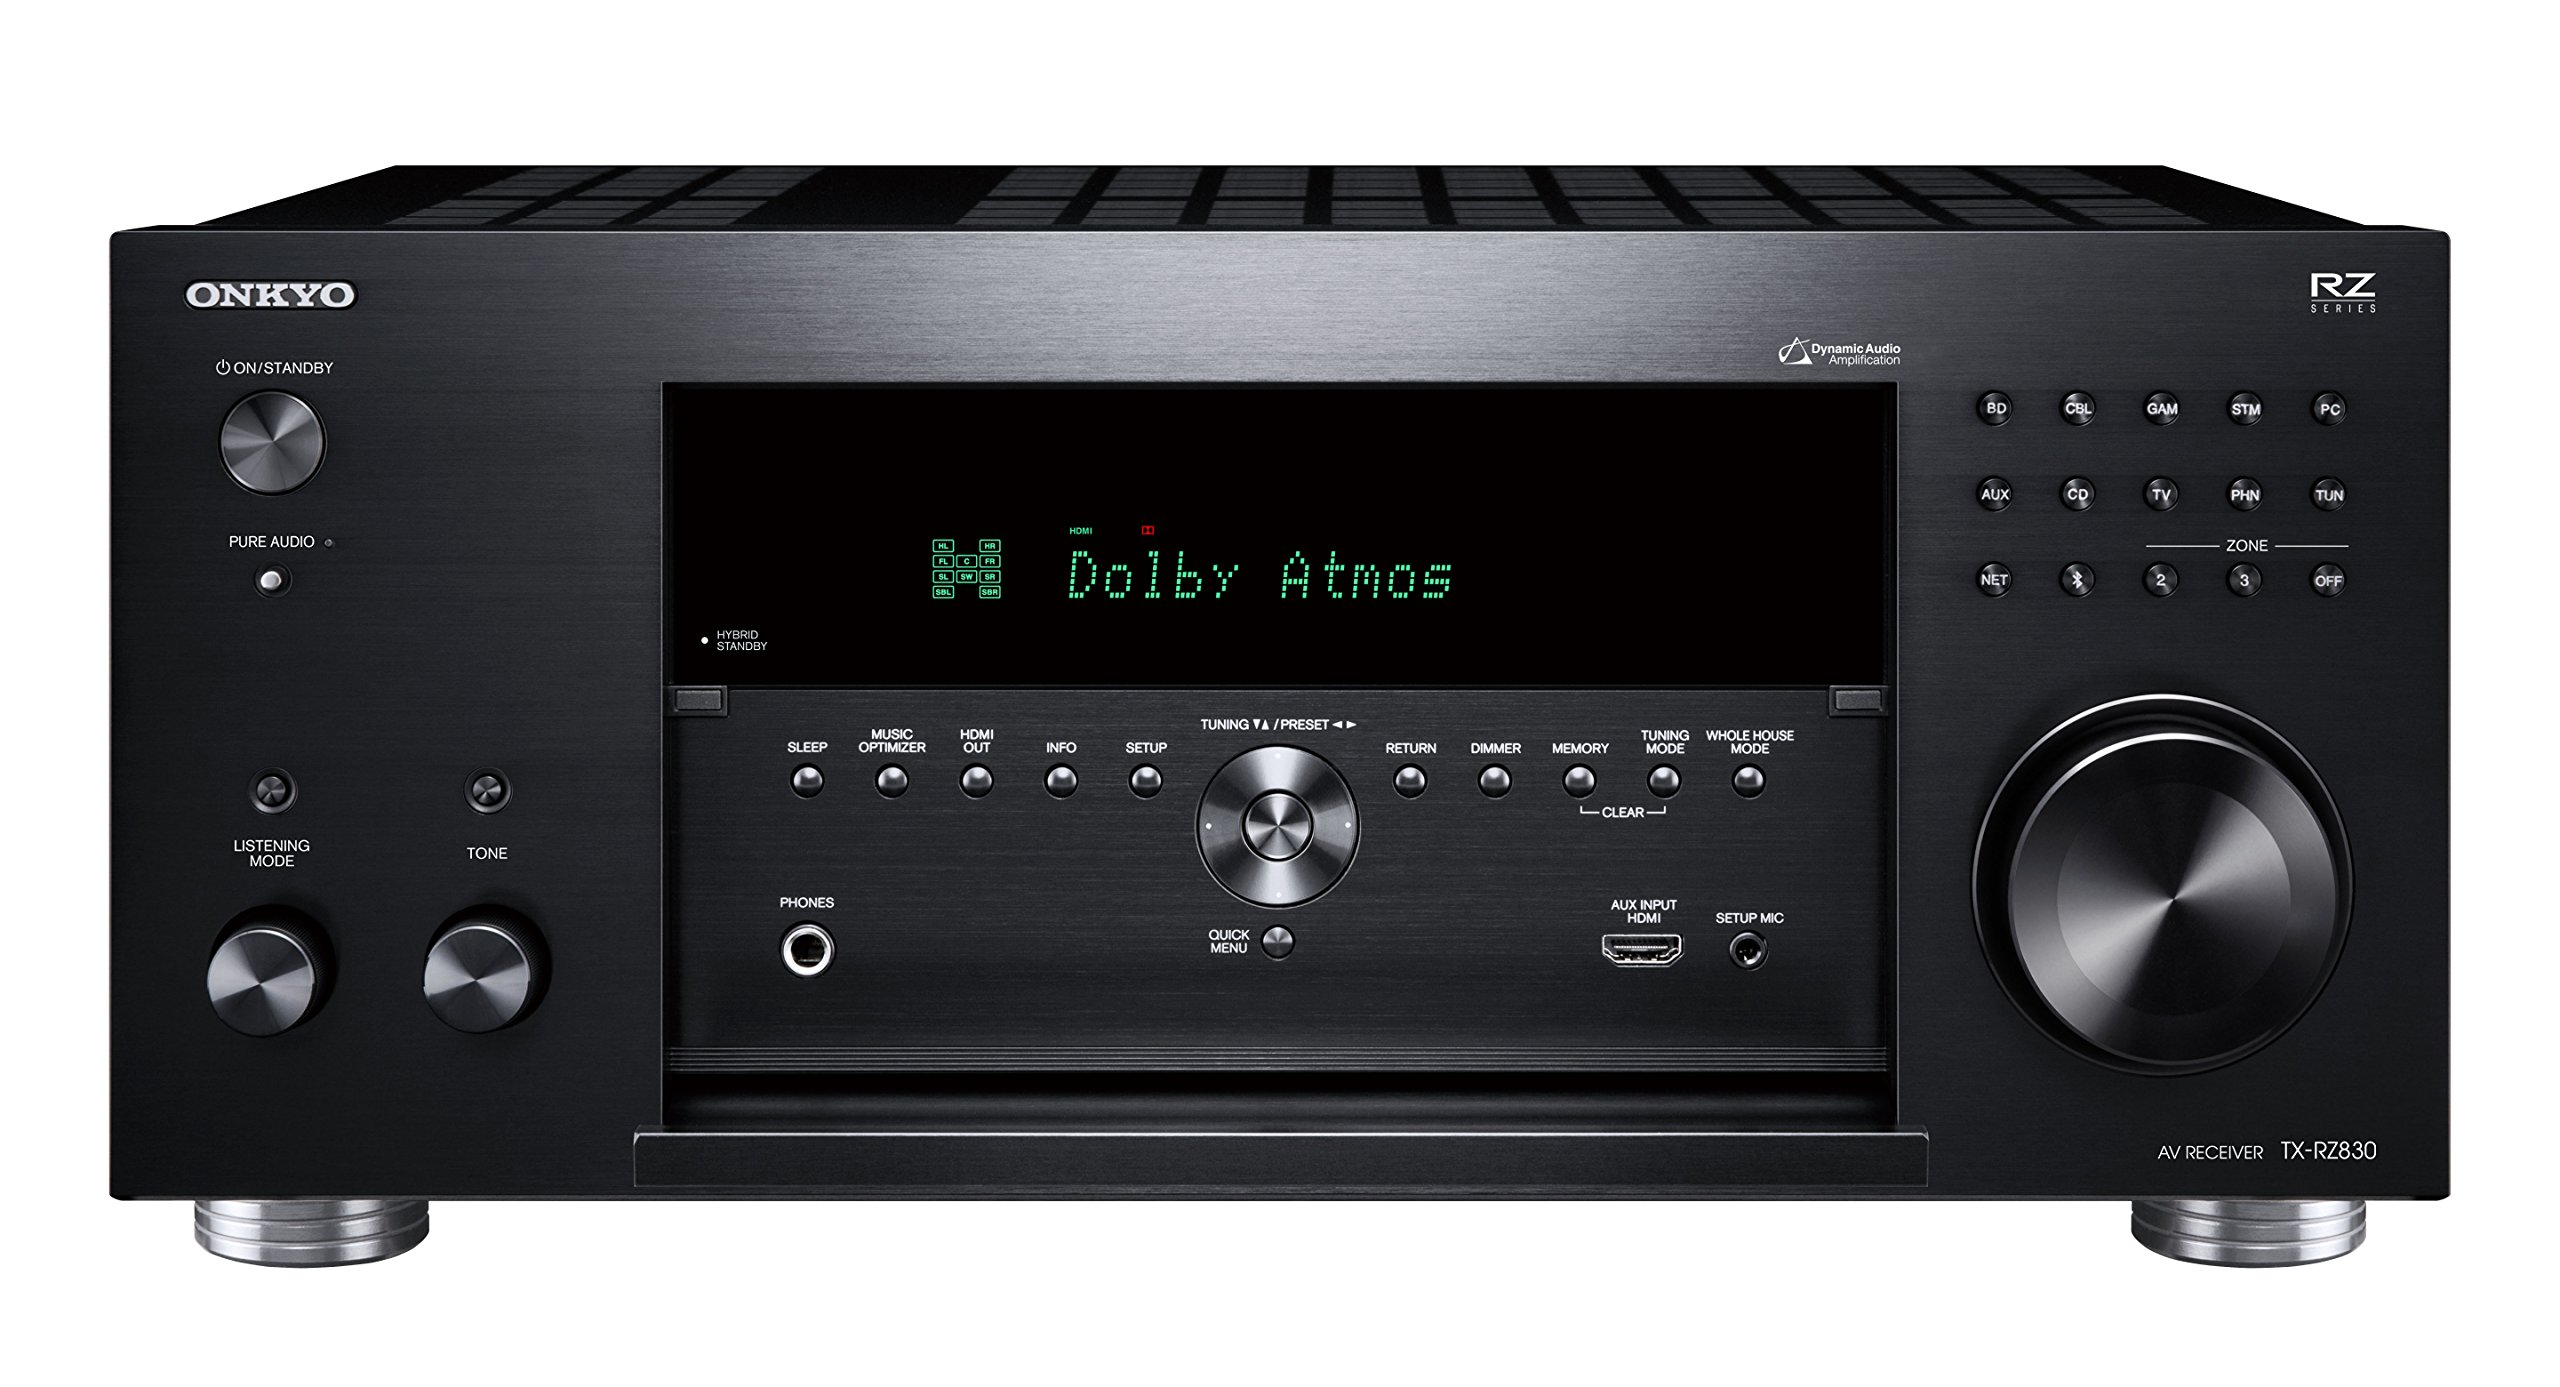 Onkyo TX-RZ830 9.2 Channel 4K Network A/V Receiver Black by Onkyo (Image #4)